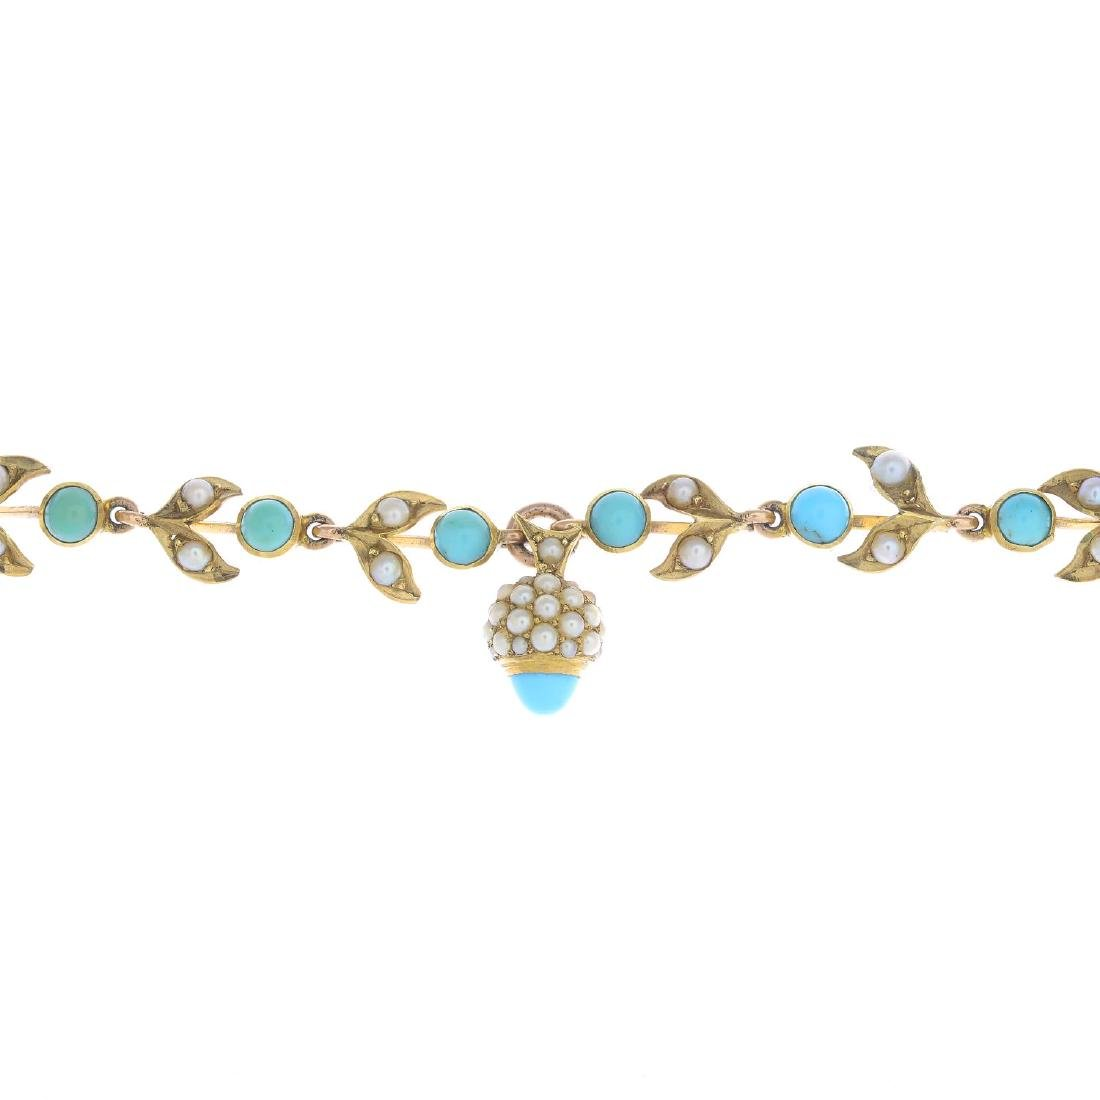 An early 20th century 14ct gold turquoise and split